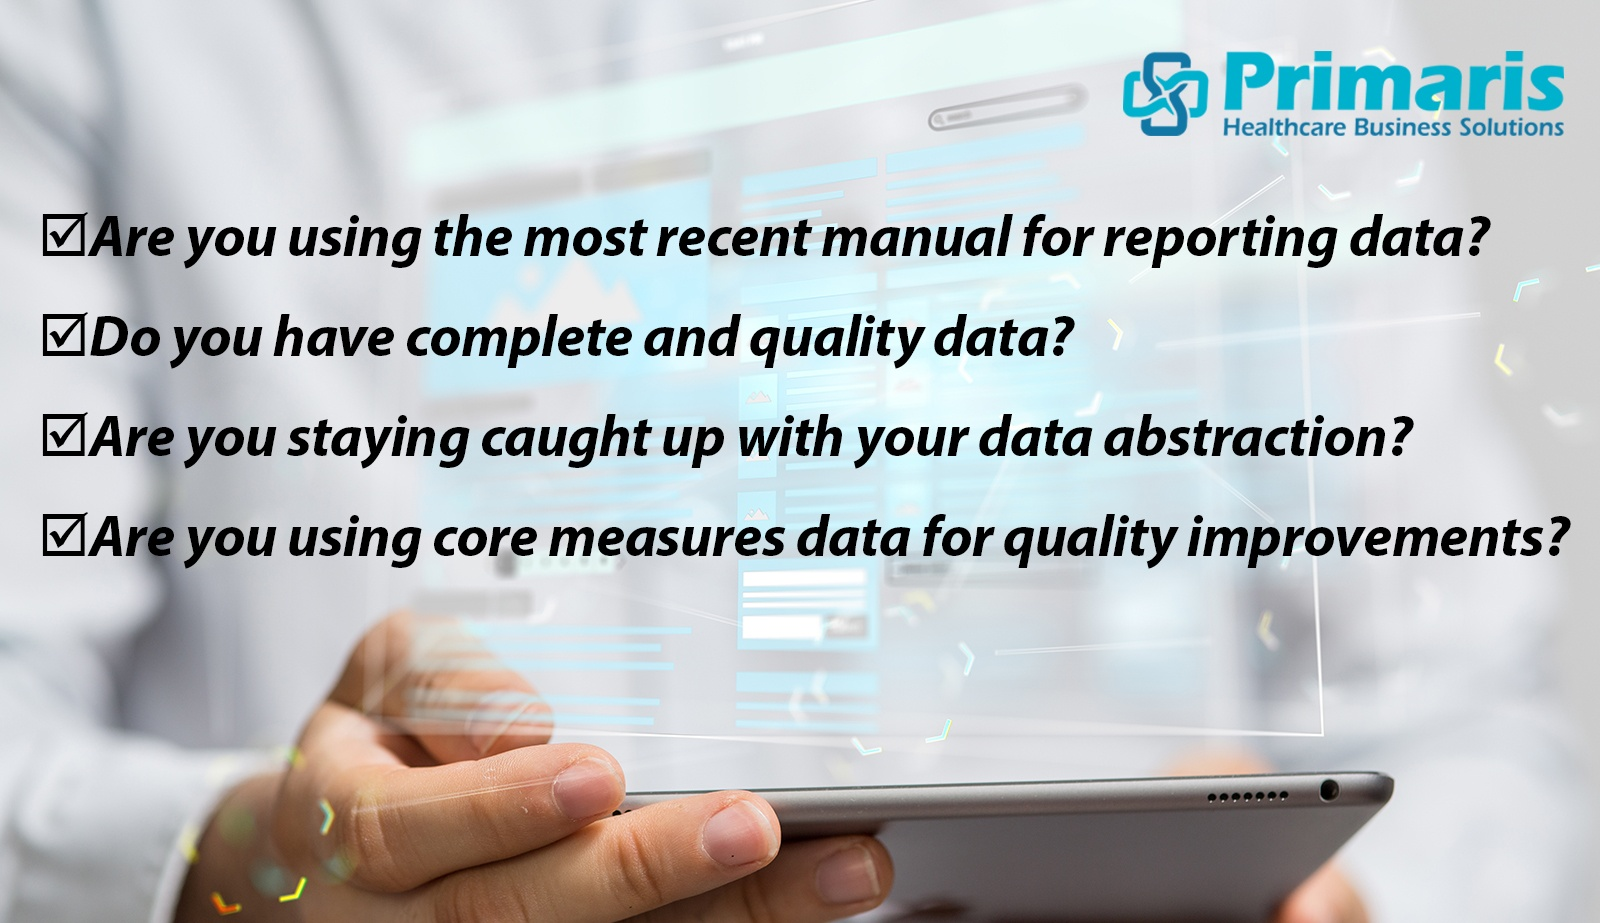 Quality reporting season never ends: Four questions to keep you on track and caught up with data abstraction.